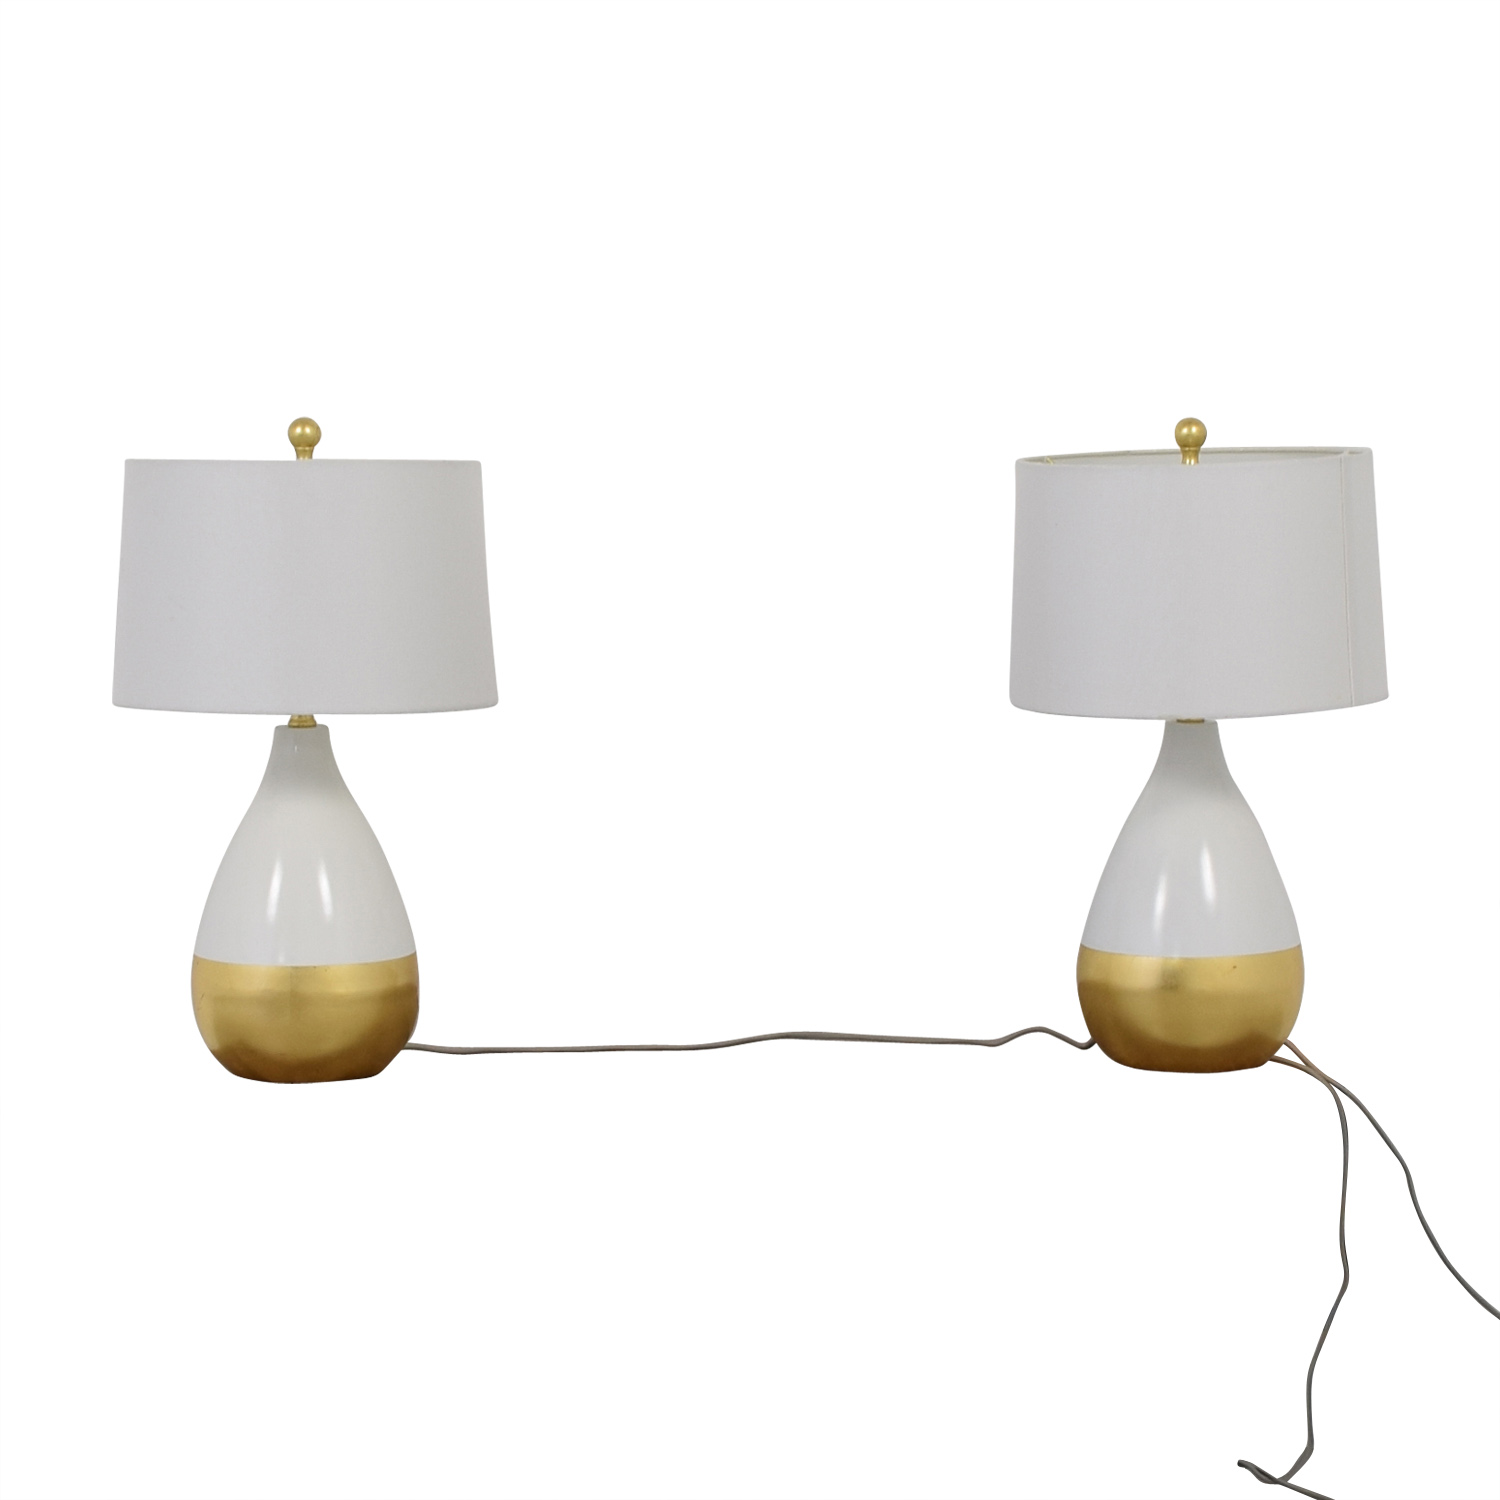 Savafieh Savafieh White and Gold Lamps price